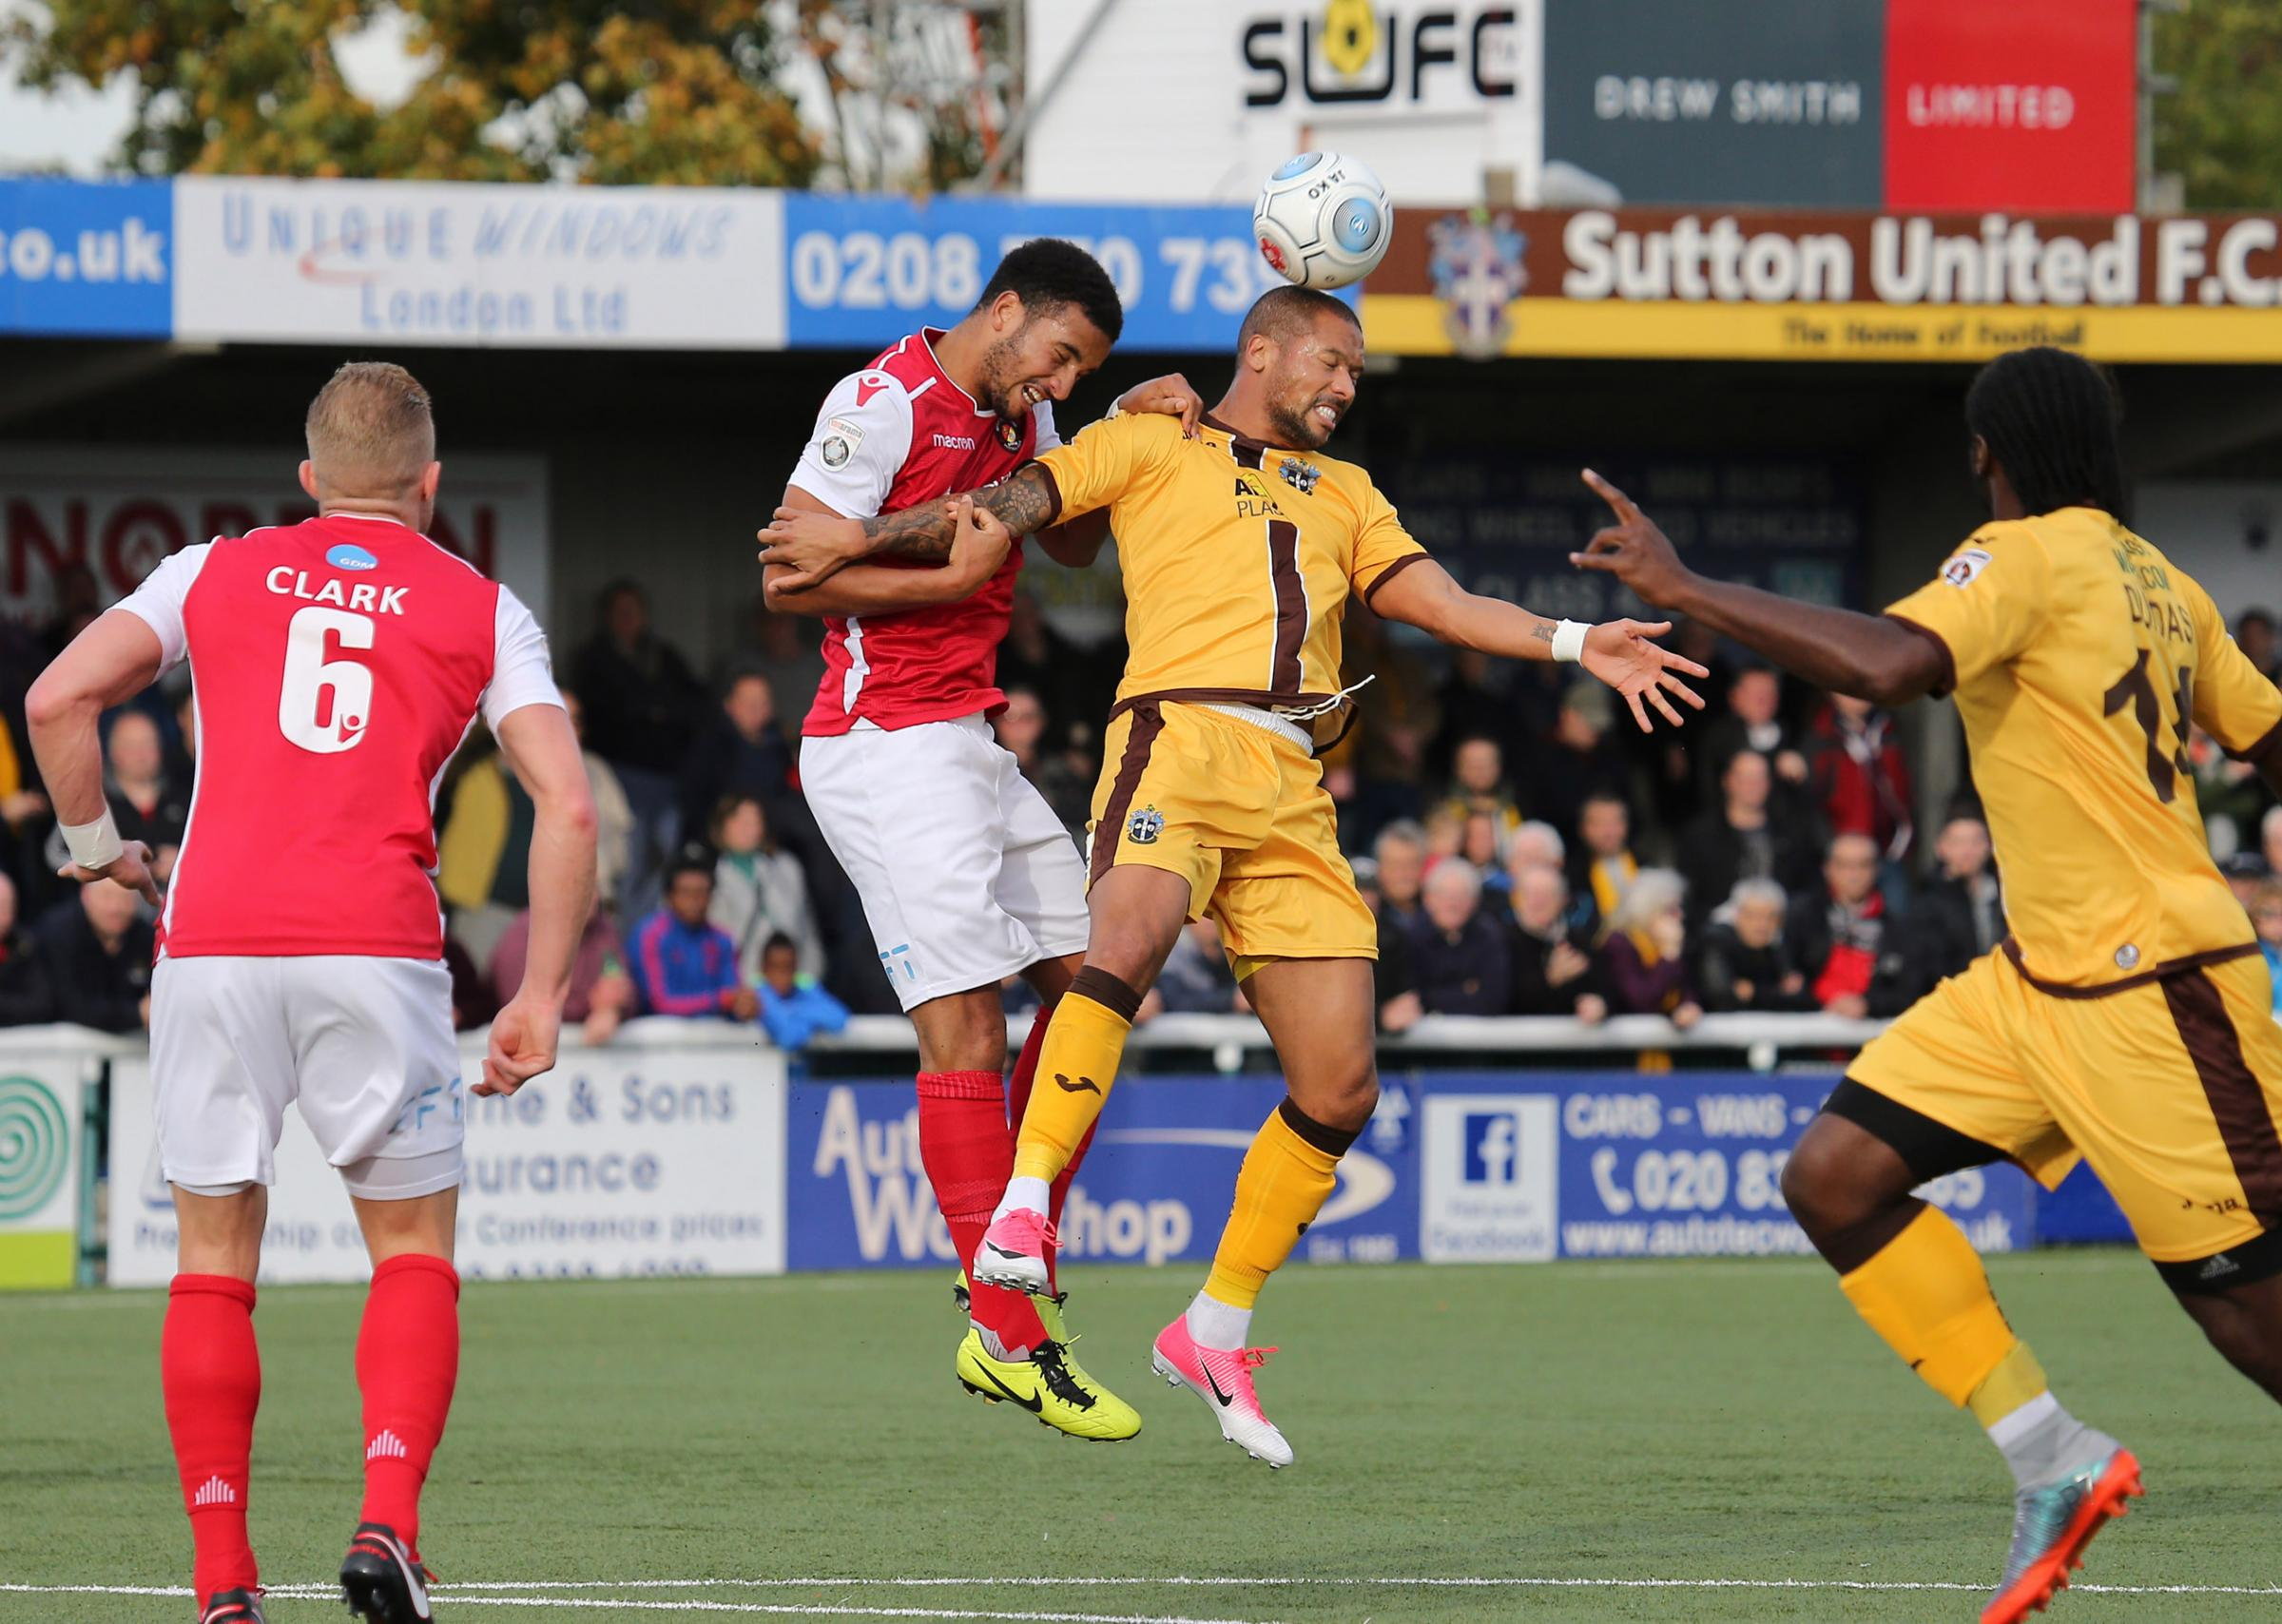 Sutton United's home match against Aldershot Town on April 28 has been made all-ticket. Picture: Paul Loughlin